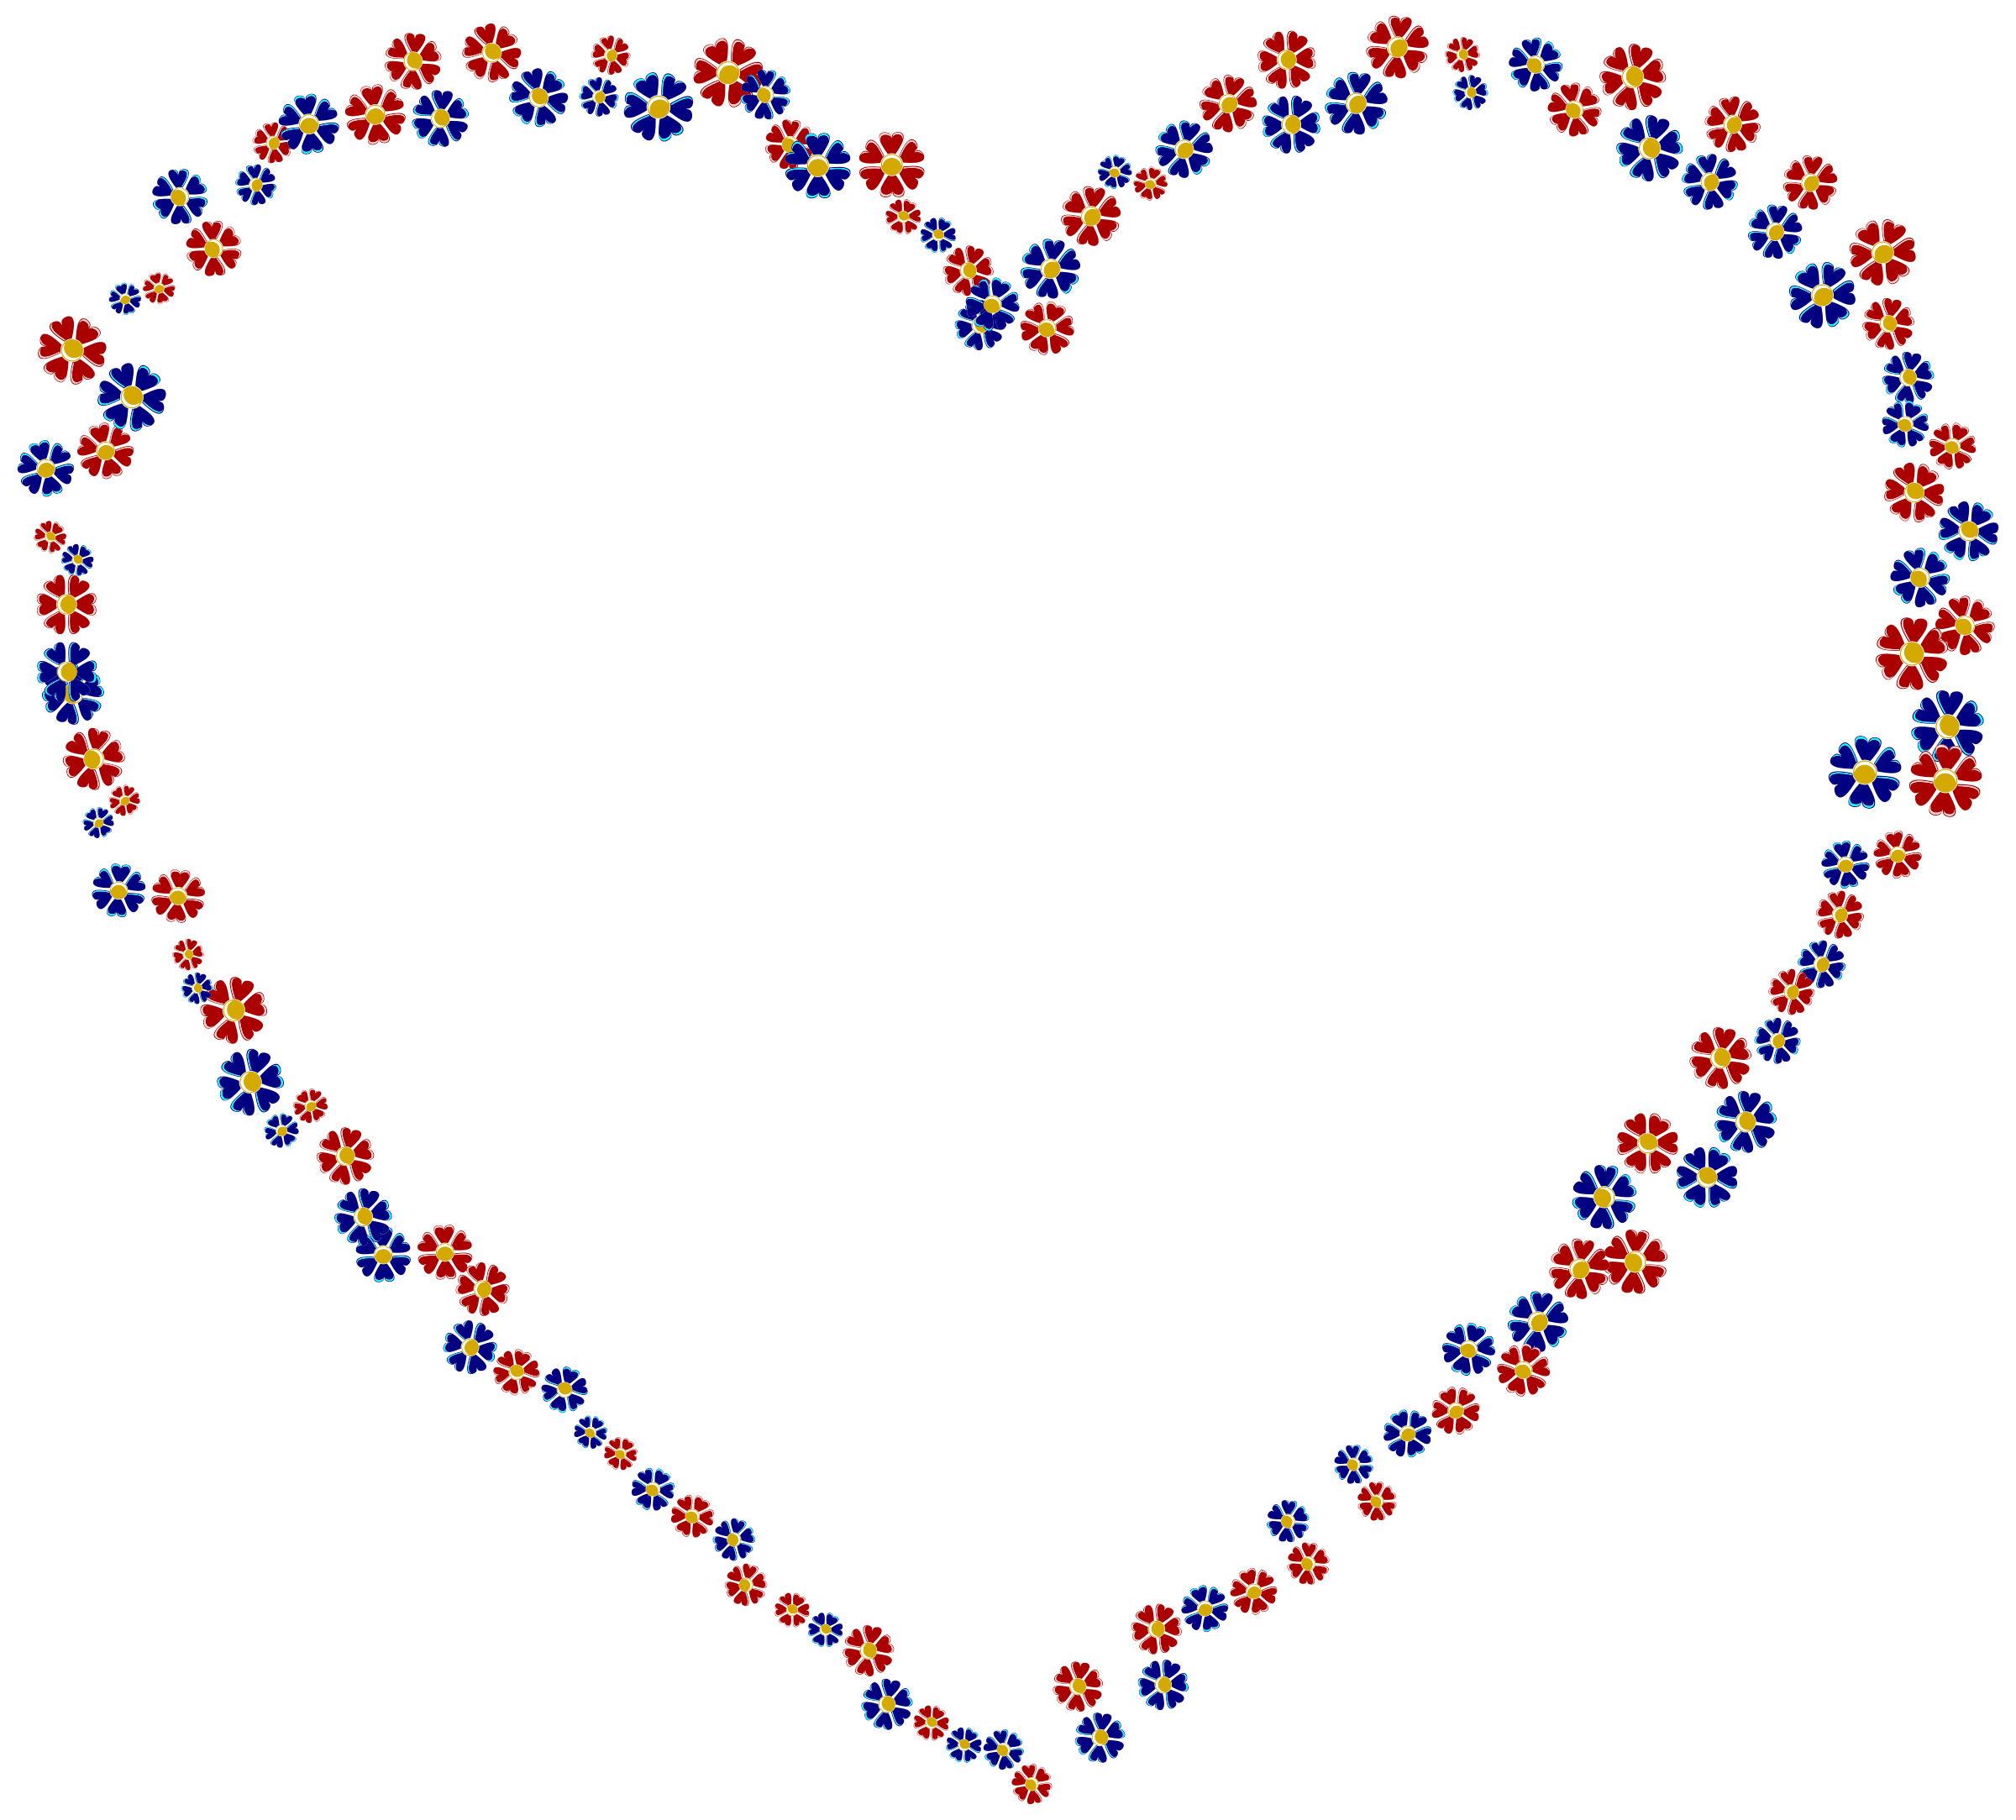 Floral heart png. Red and blue icons